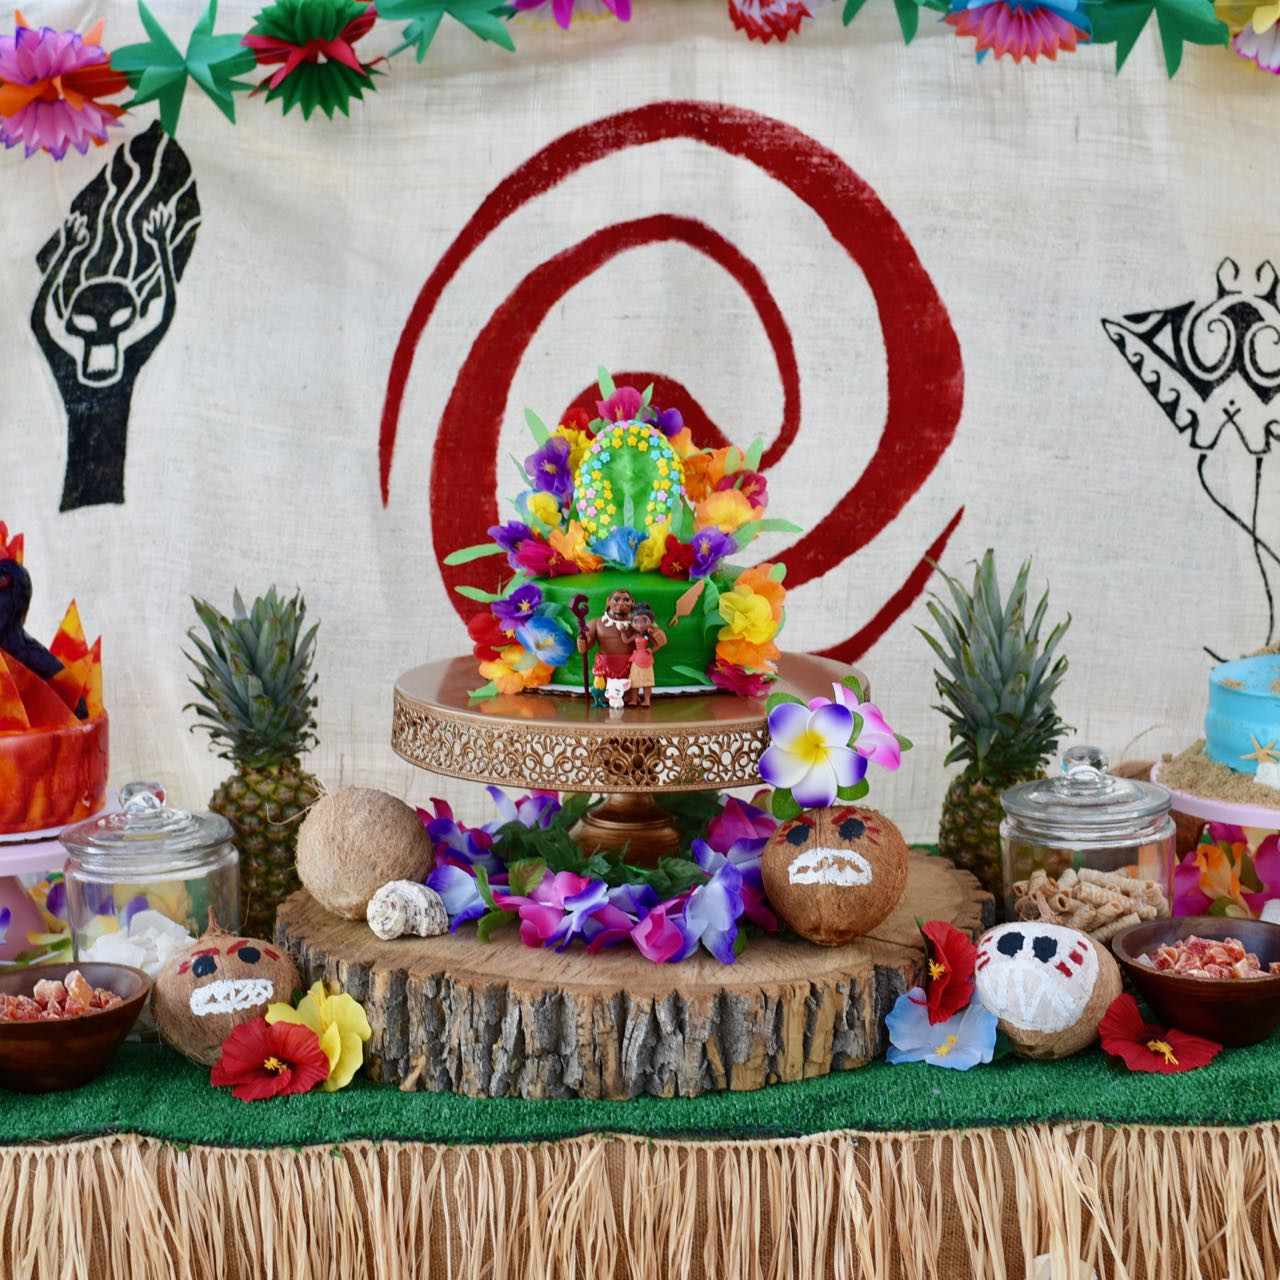 Best ideas about Moana Birthday Party Ideas . Save or Pin Moana Birthday Party with Incredible Details Make Life Now.